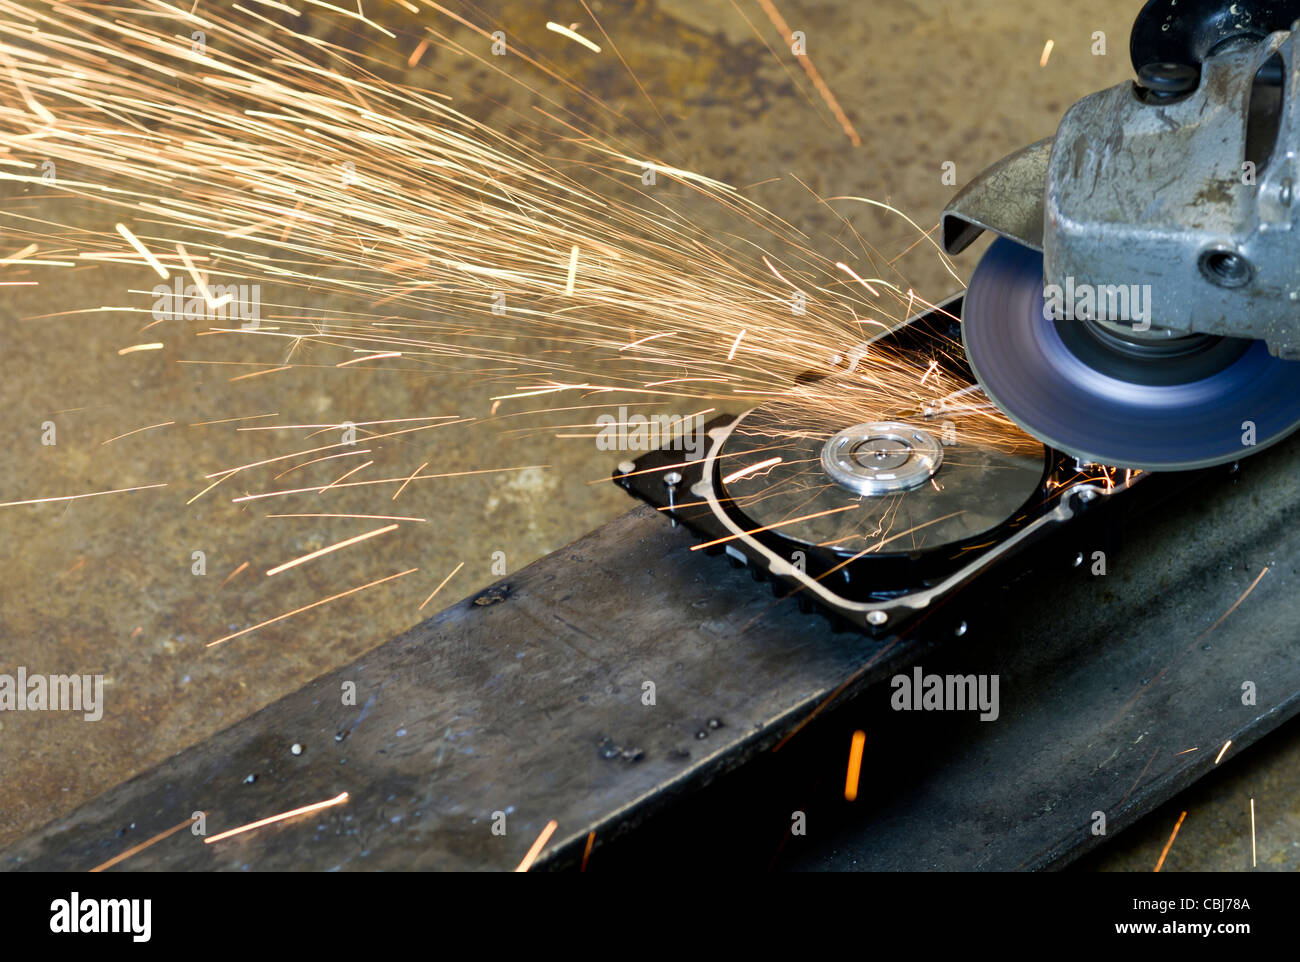 hard disk drive with rotating grinder and sparks in front of rusty back - Stock Image